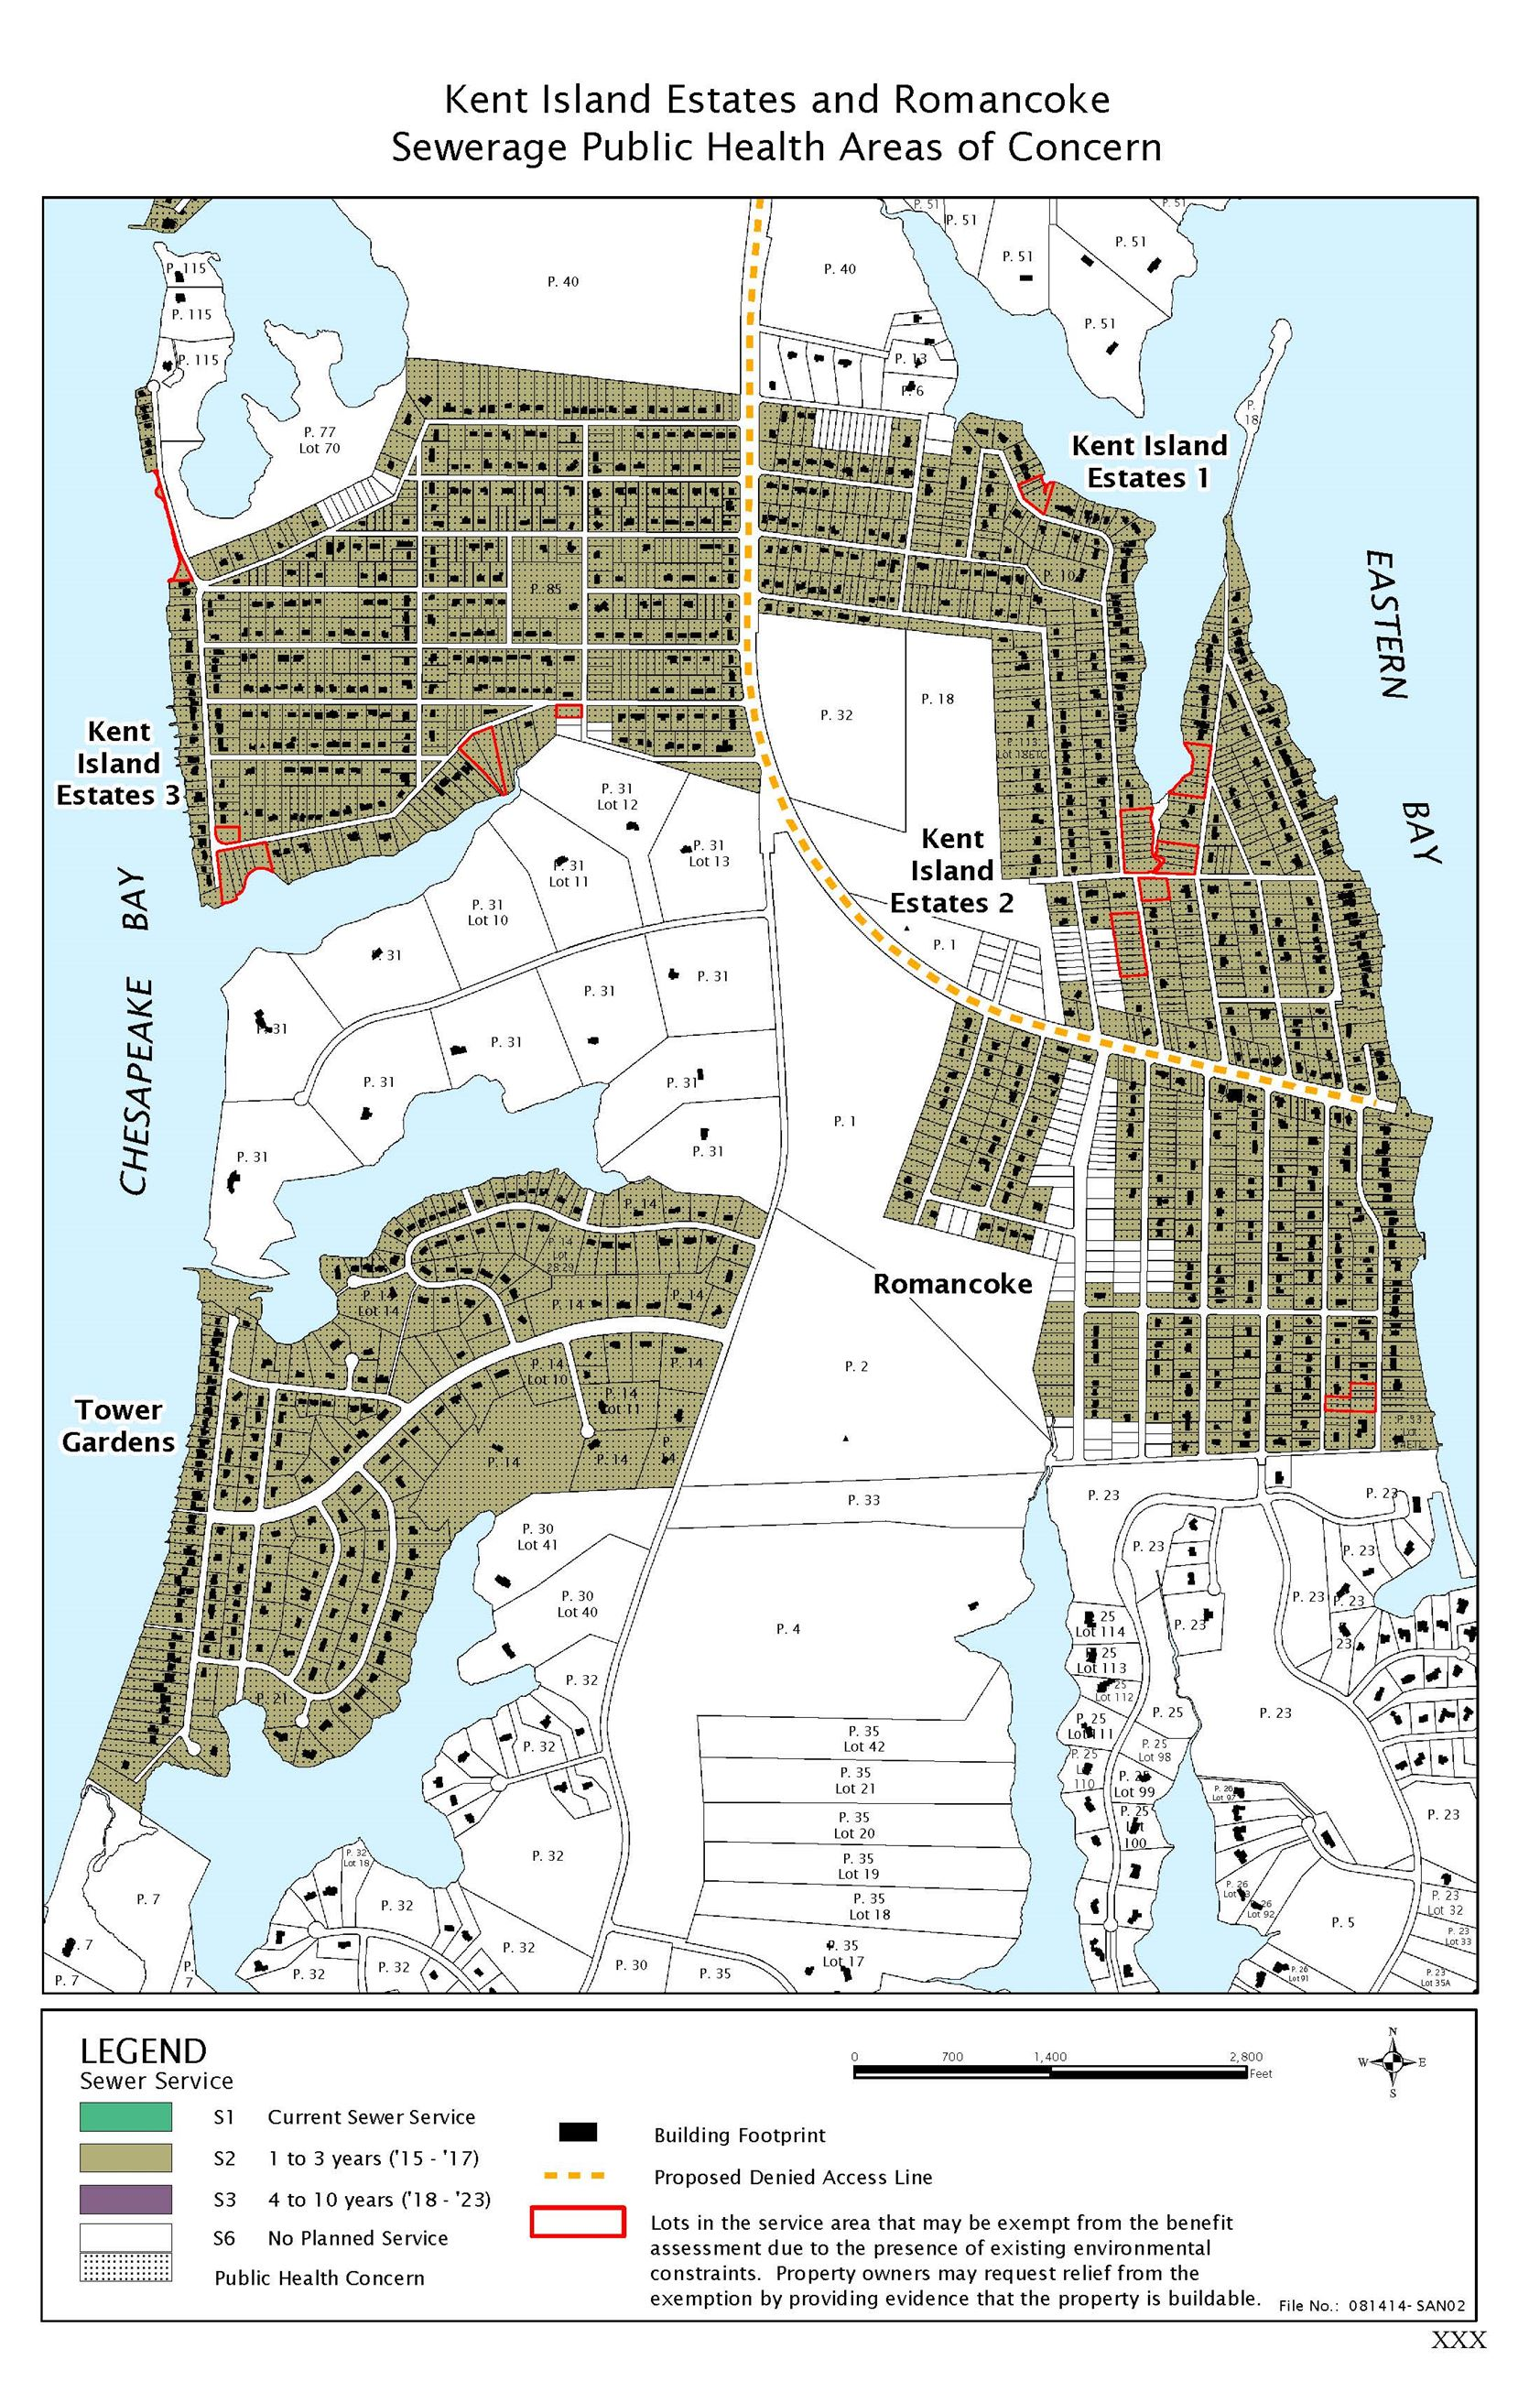 Kent Island Estates and Romancoke Sewerage Public Health Areas of Concern